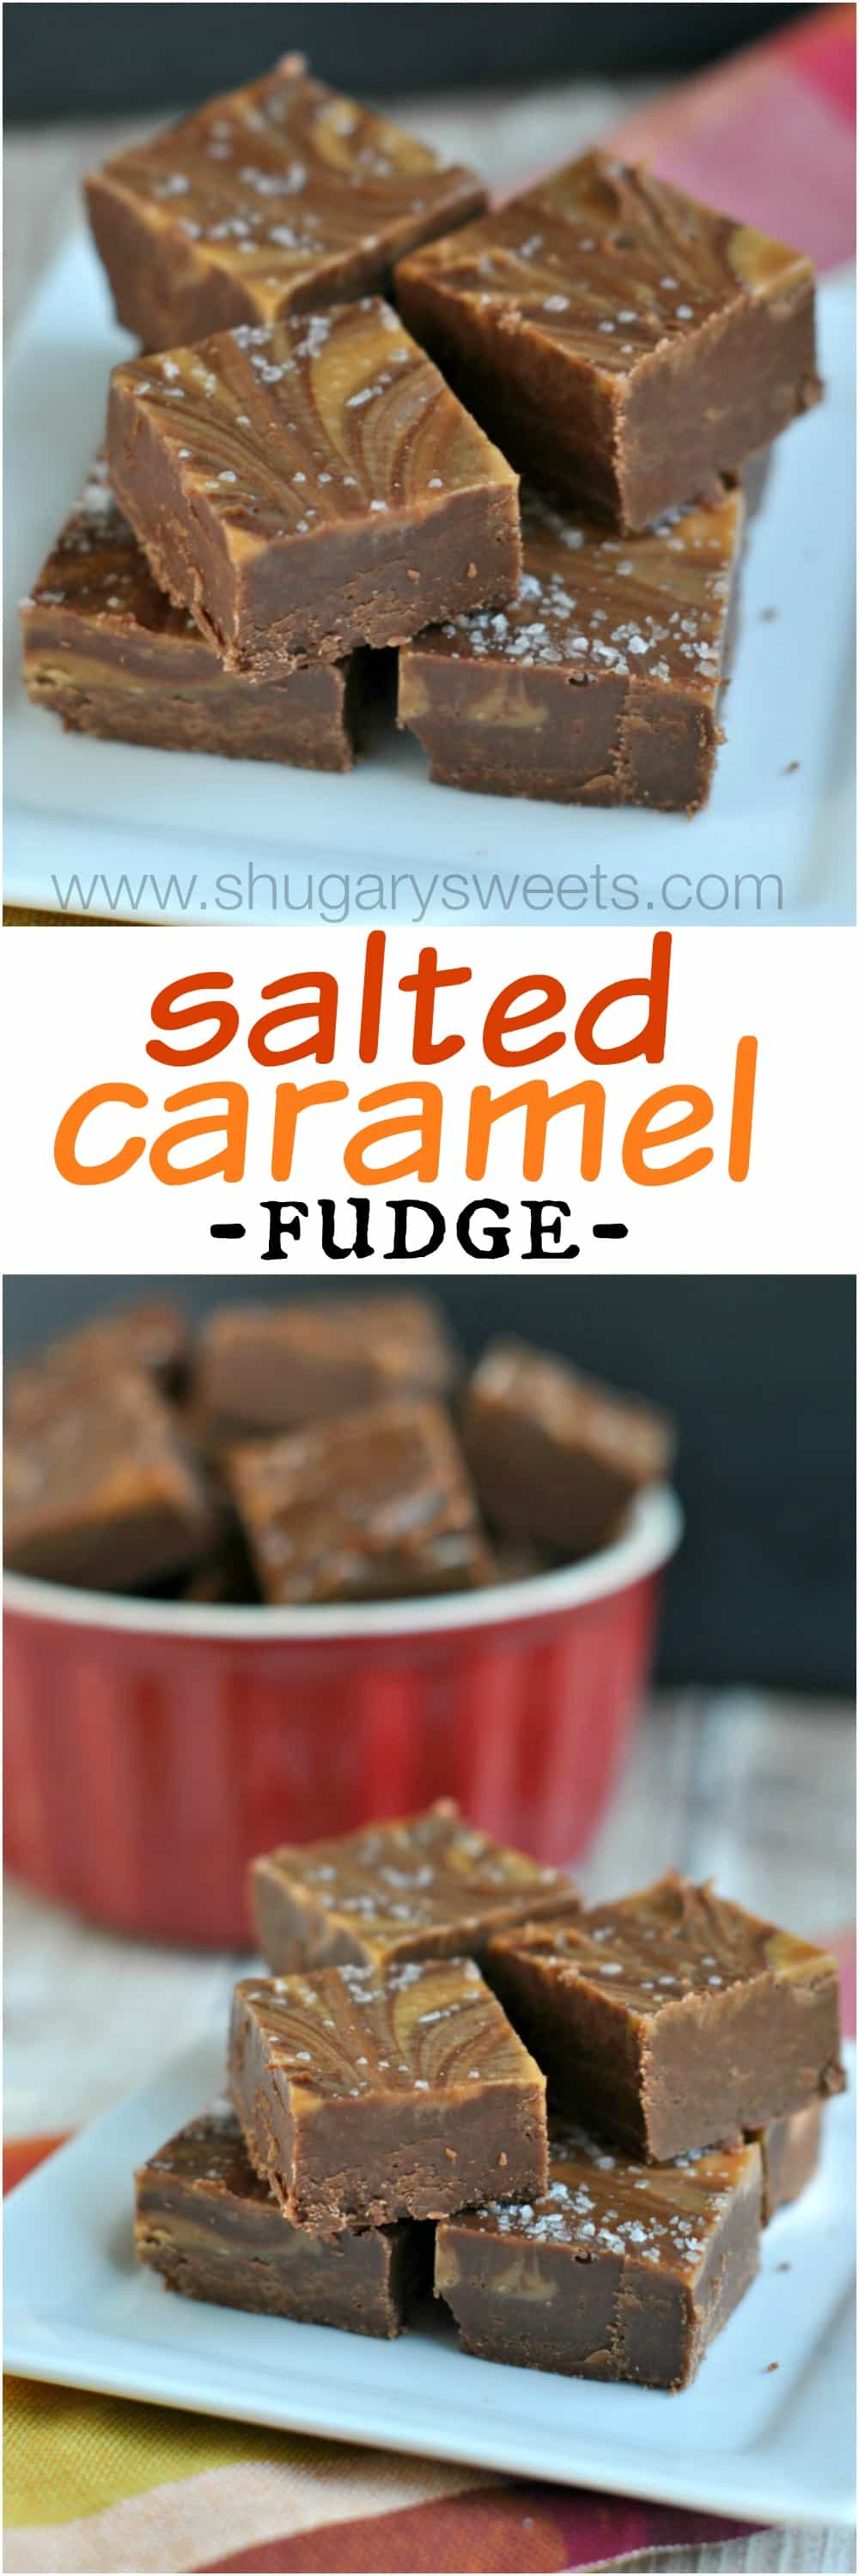 salted-caramel-fudge-11.jpg